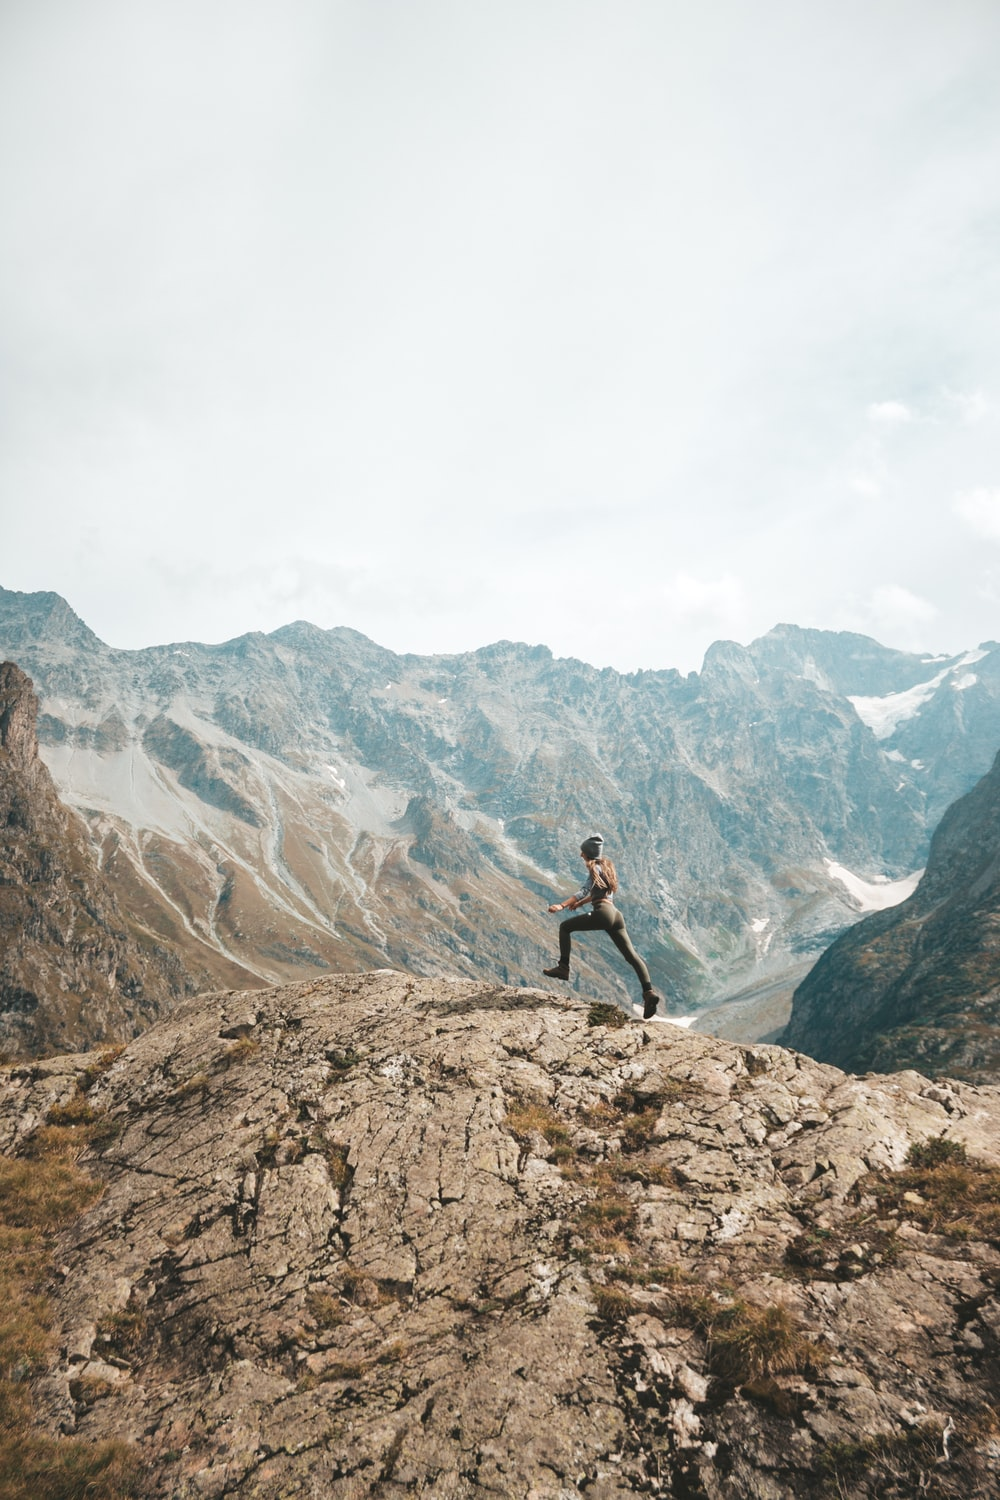 person standing on mountain scenery